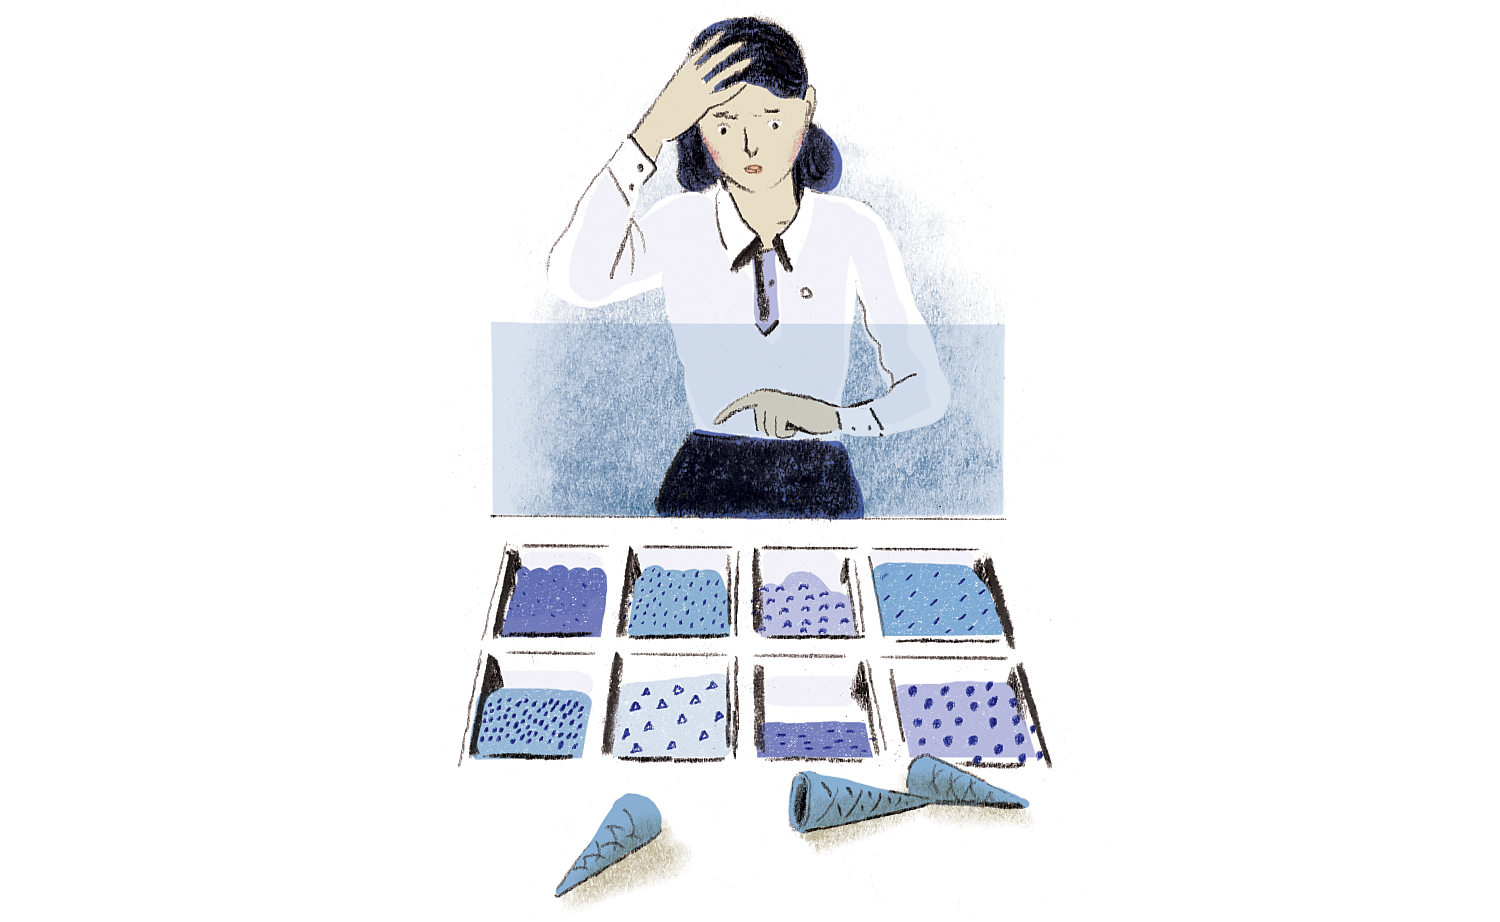 Illustration: woman trying to decide between sweets